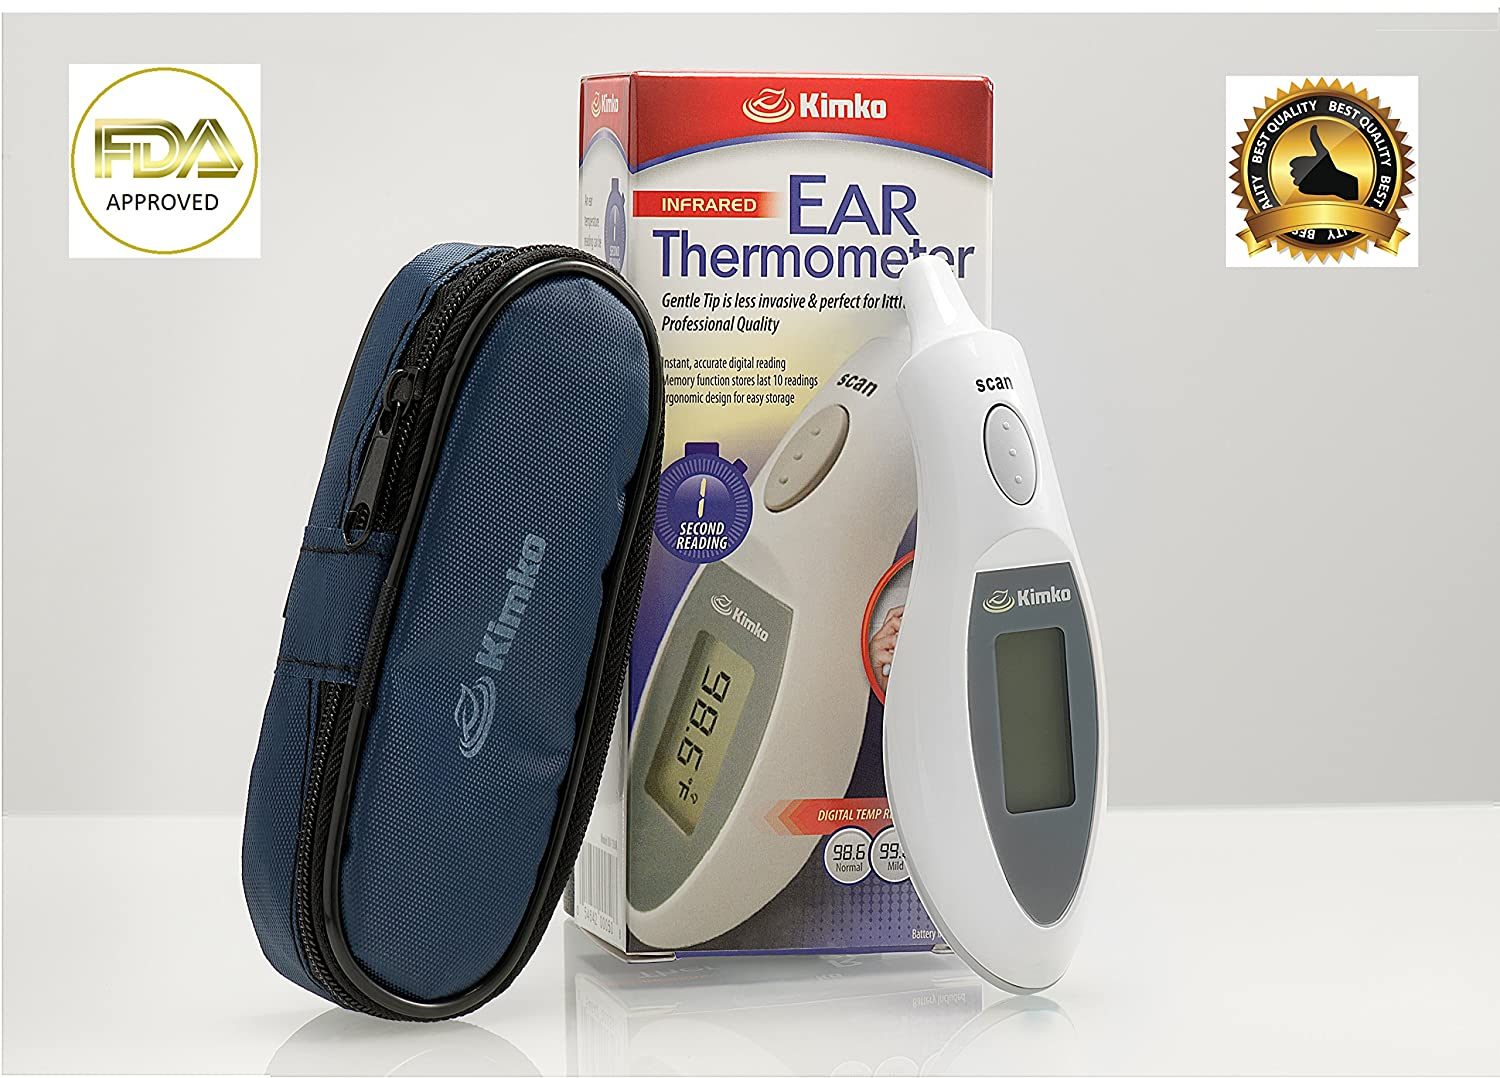 Amazon.com : Ear Thermometer - High Accuracy, FDA Approved Digital Infrared Thermometer - 1 Second Quick Read - Perfect For Kids, Infants, Babies, ...